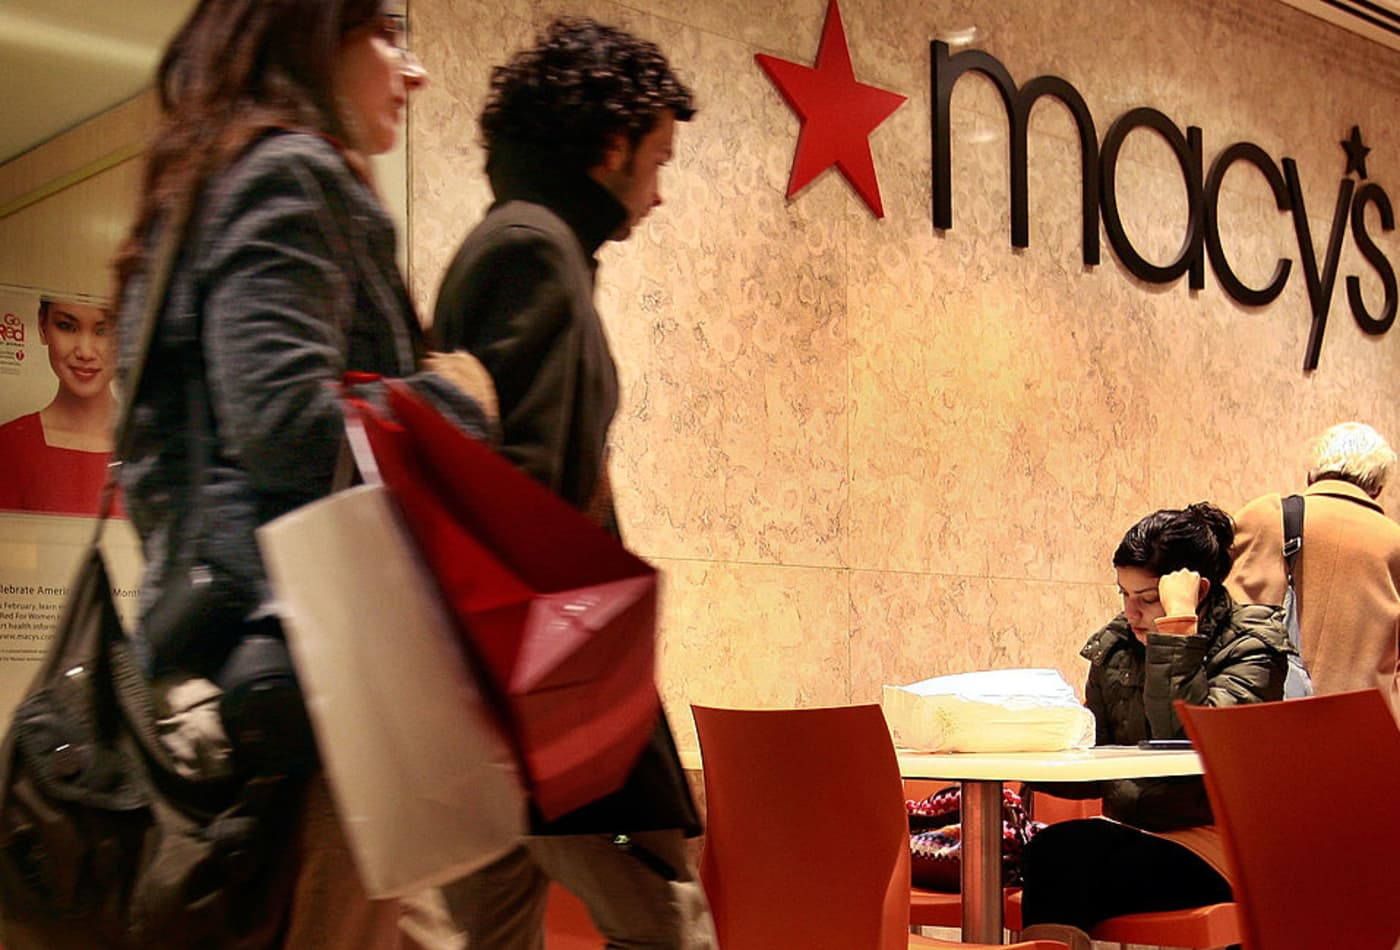 Macy's, Kohl's furlough employees as they cope with significant sales losses